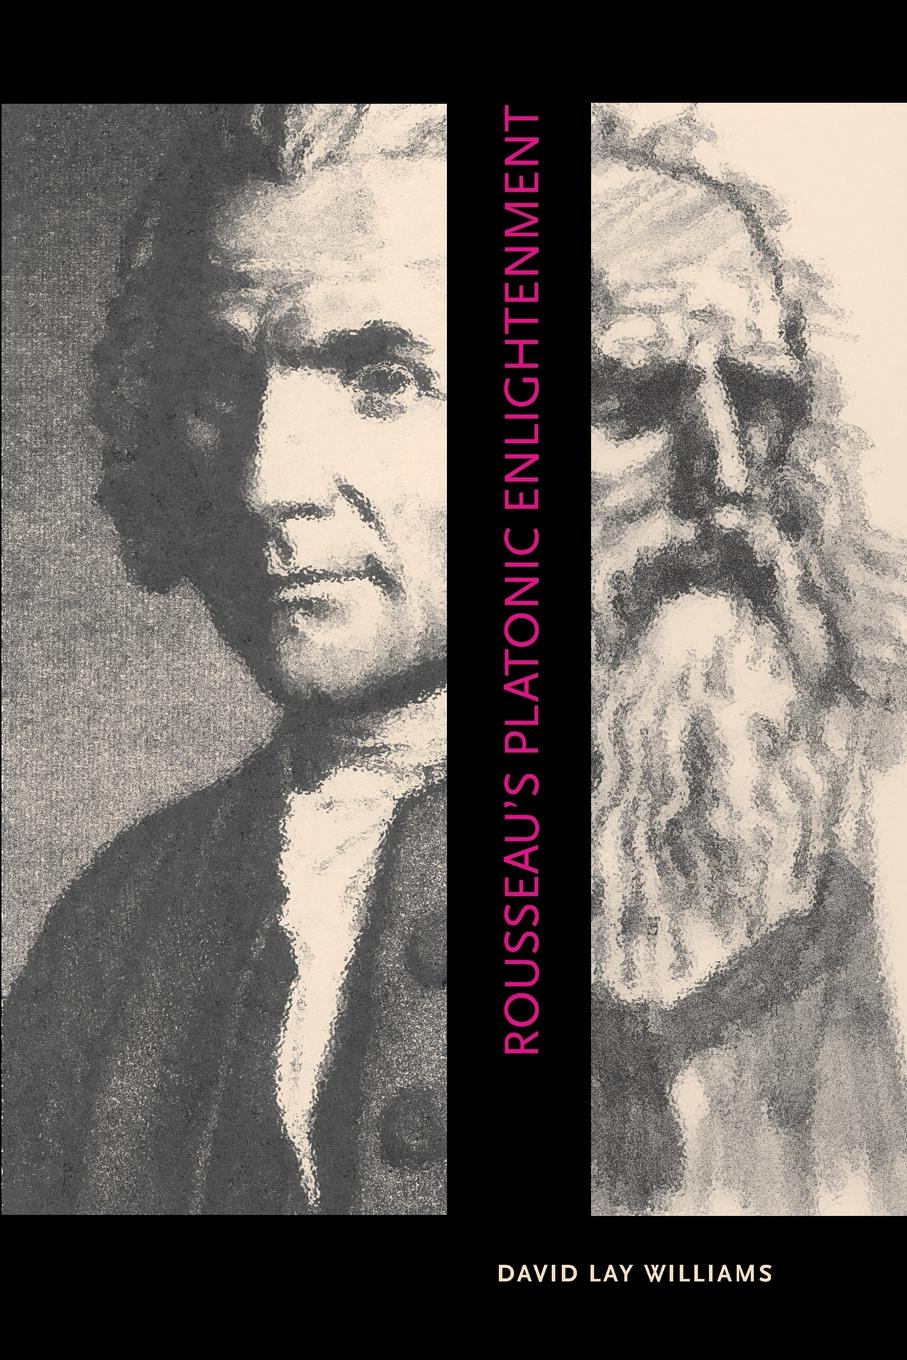 David Lay Williams Rousseau's Platonic Enlightenment rousseau часы